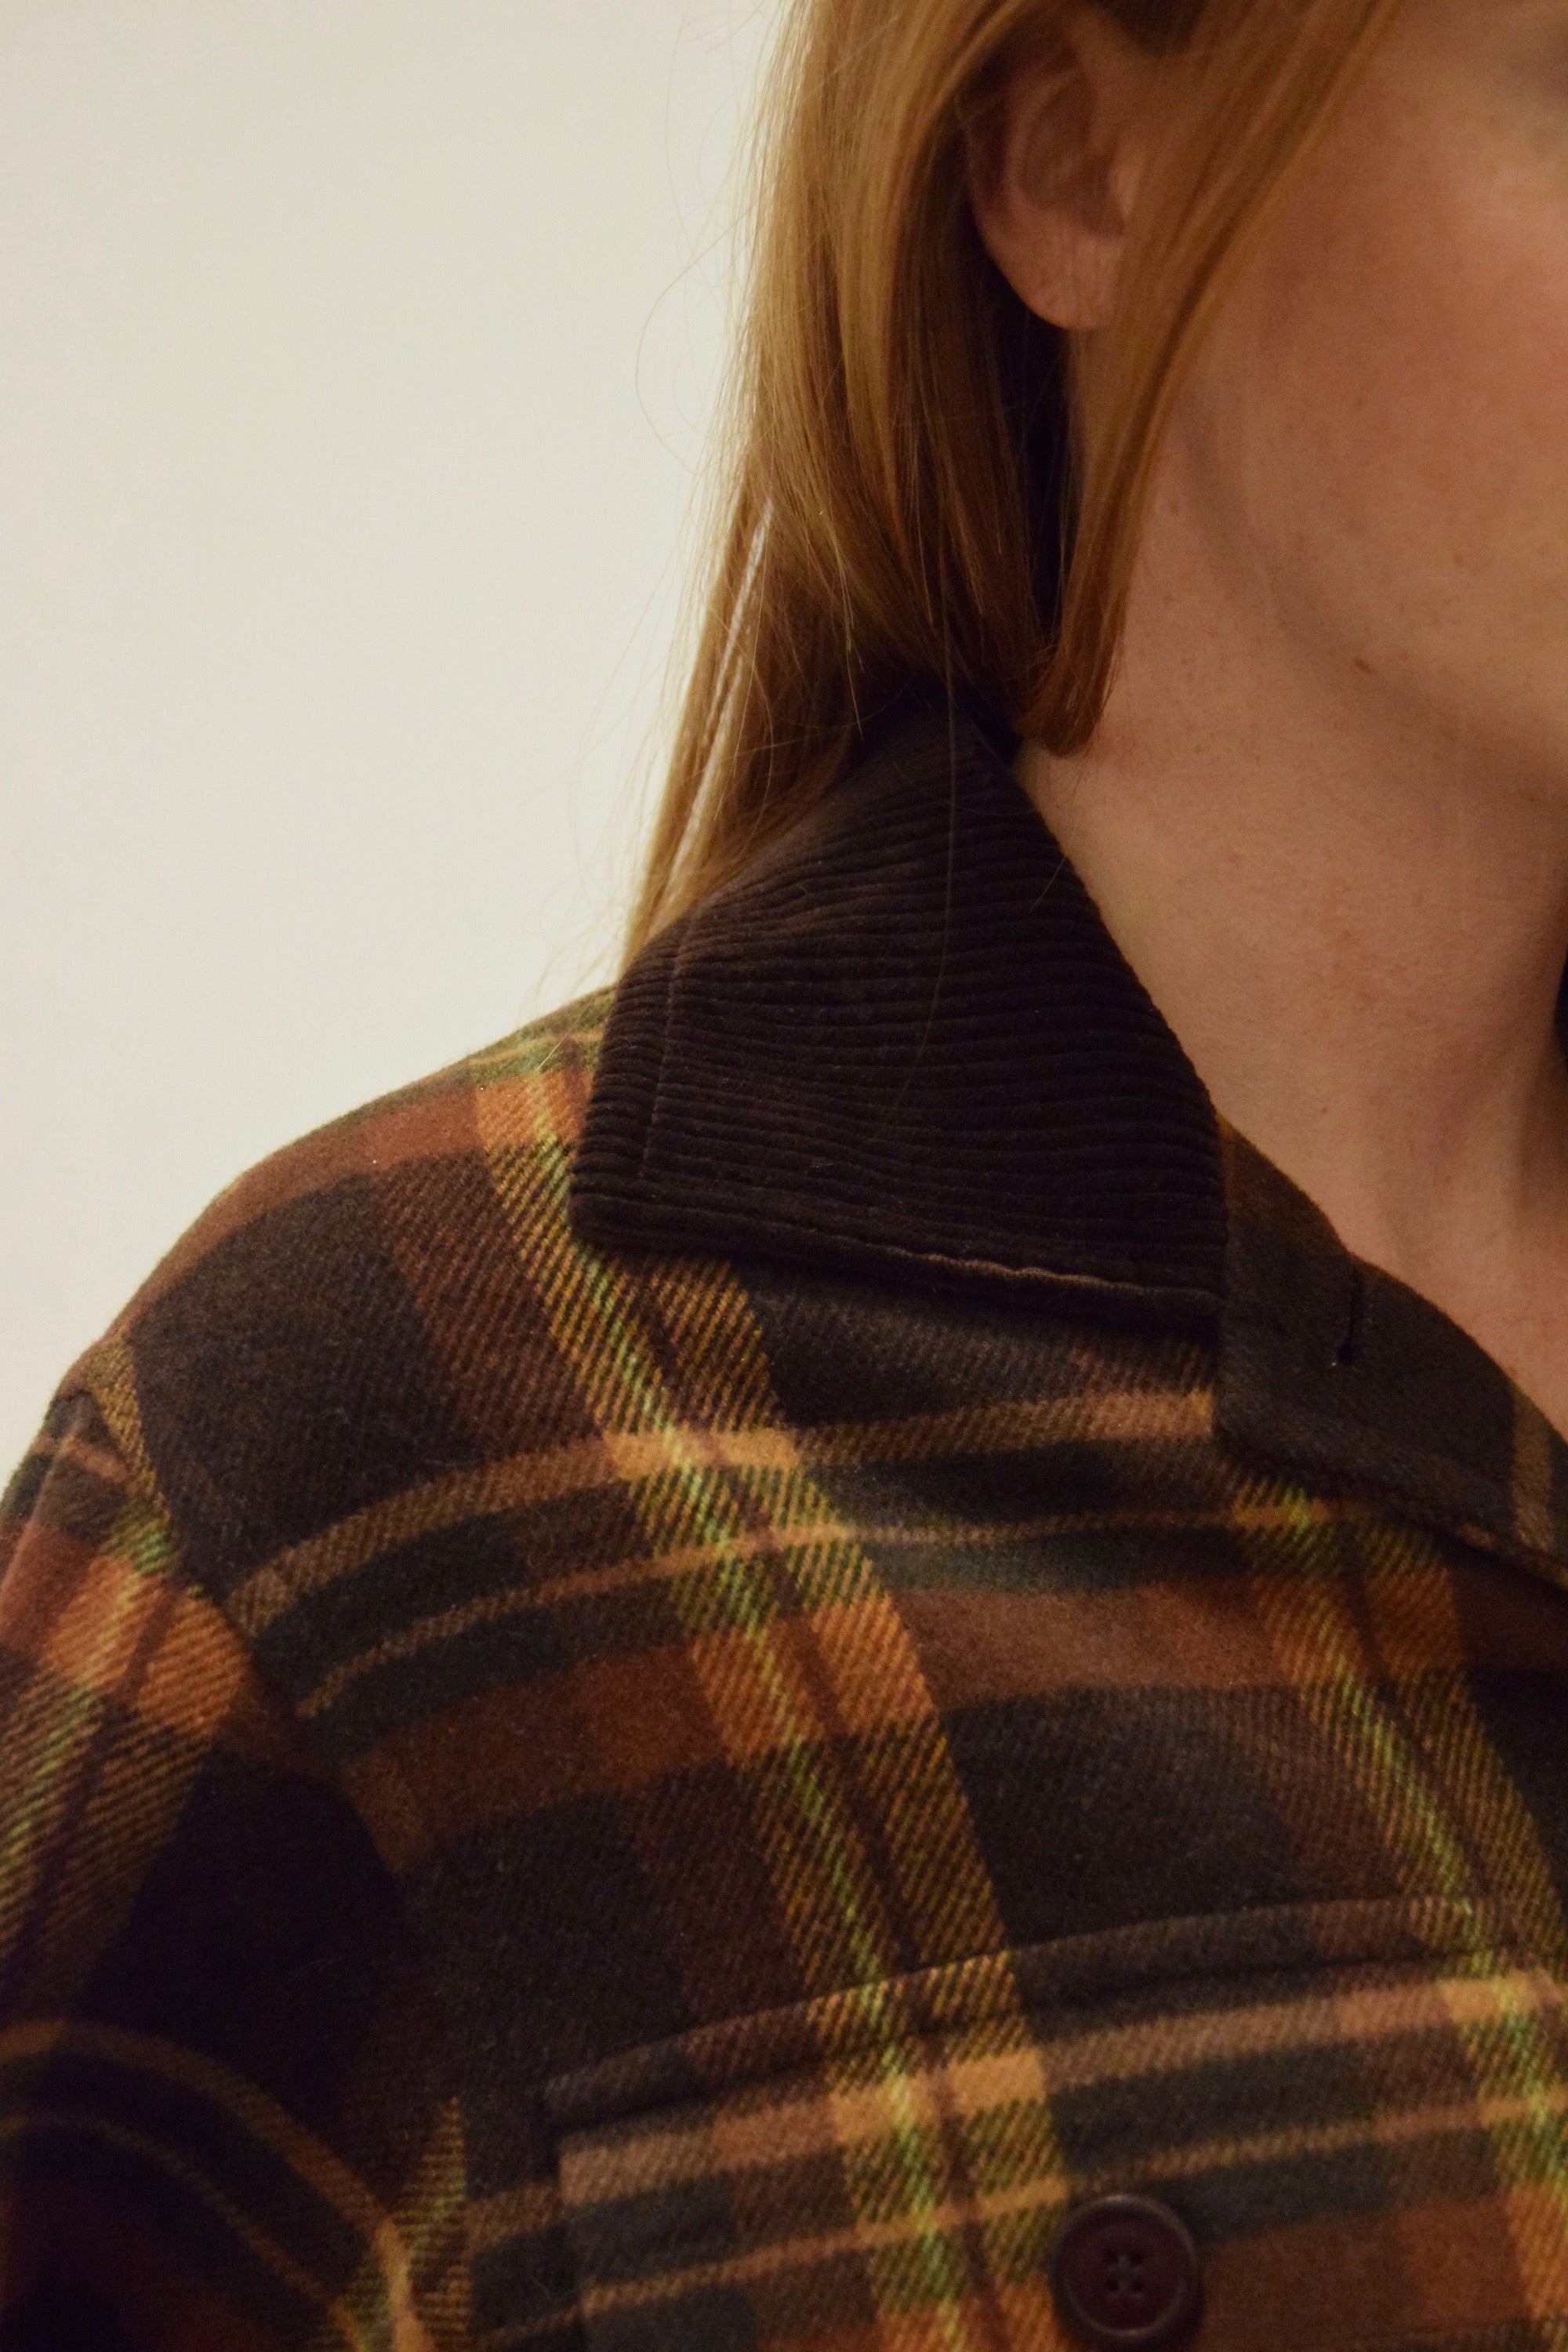 Square Cut Brown Plaid Wool Jacket FREE SHIPPING TO THE U.S.